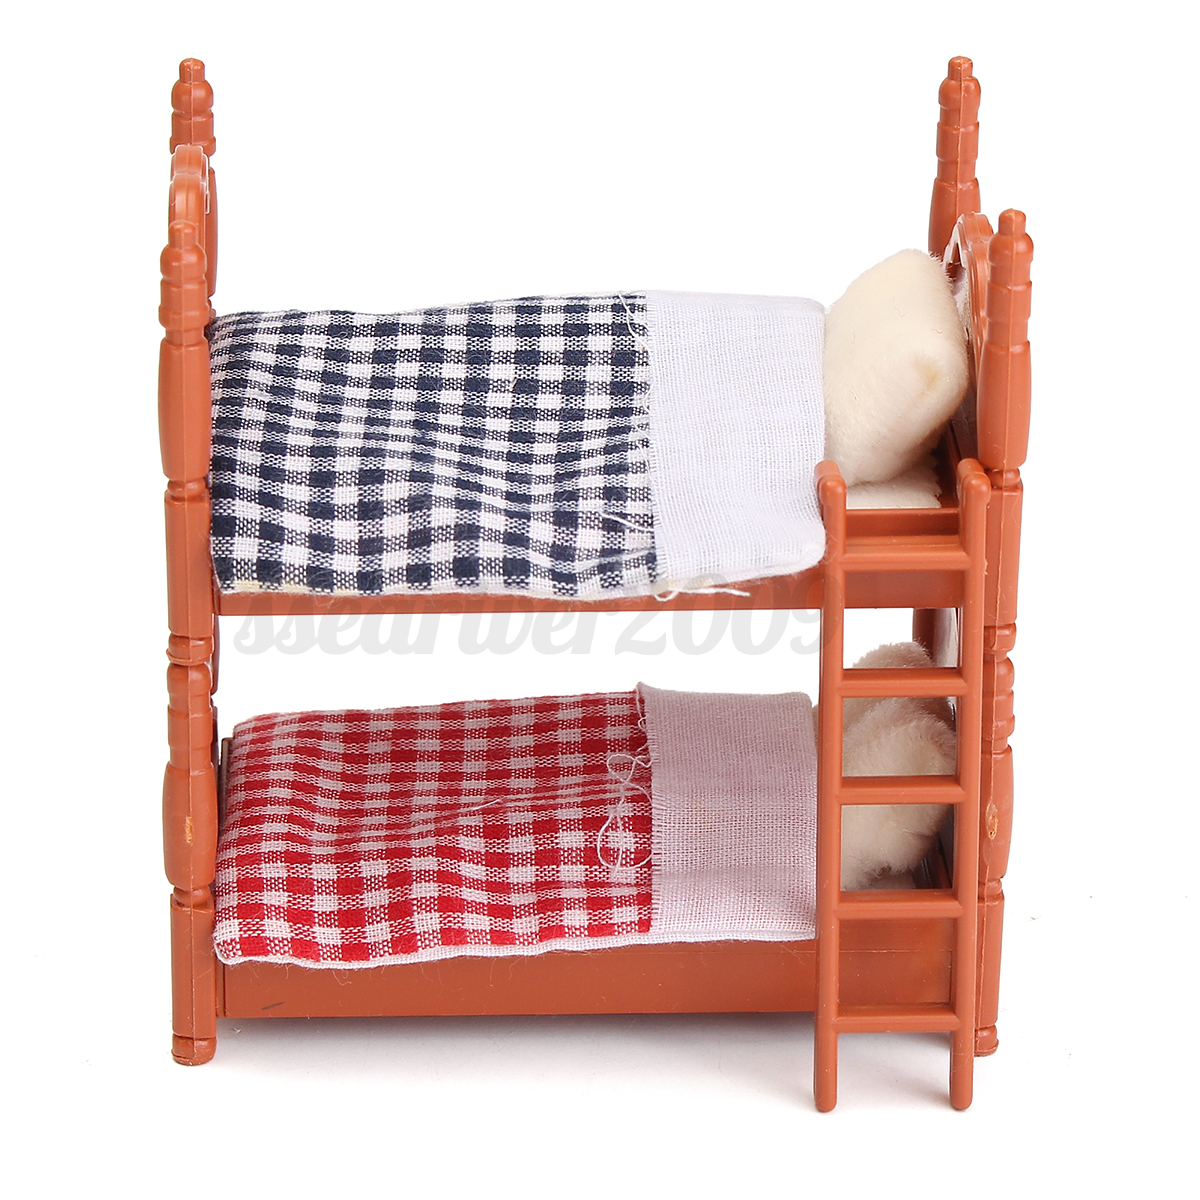 1 12 Scale Dollhouse Miniature Furniture Plastic Bunk Bed Bedroom Acessories